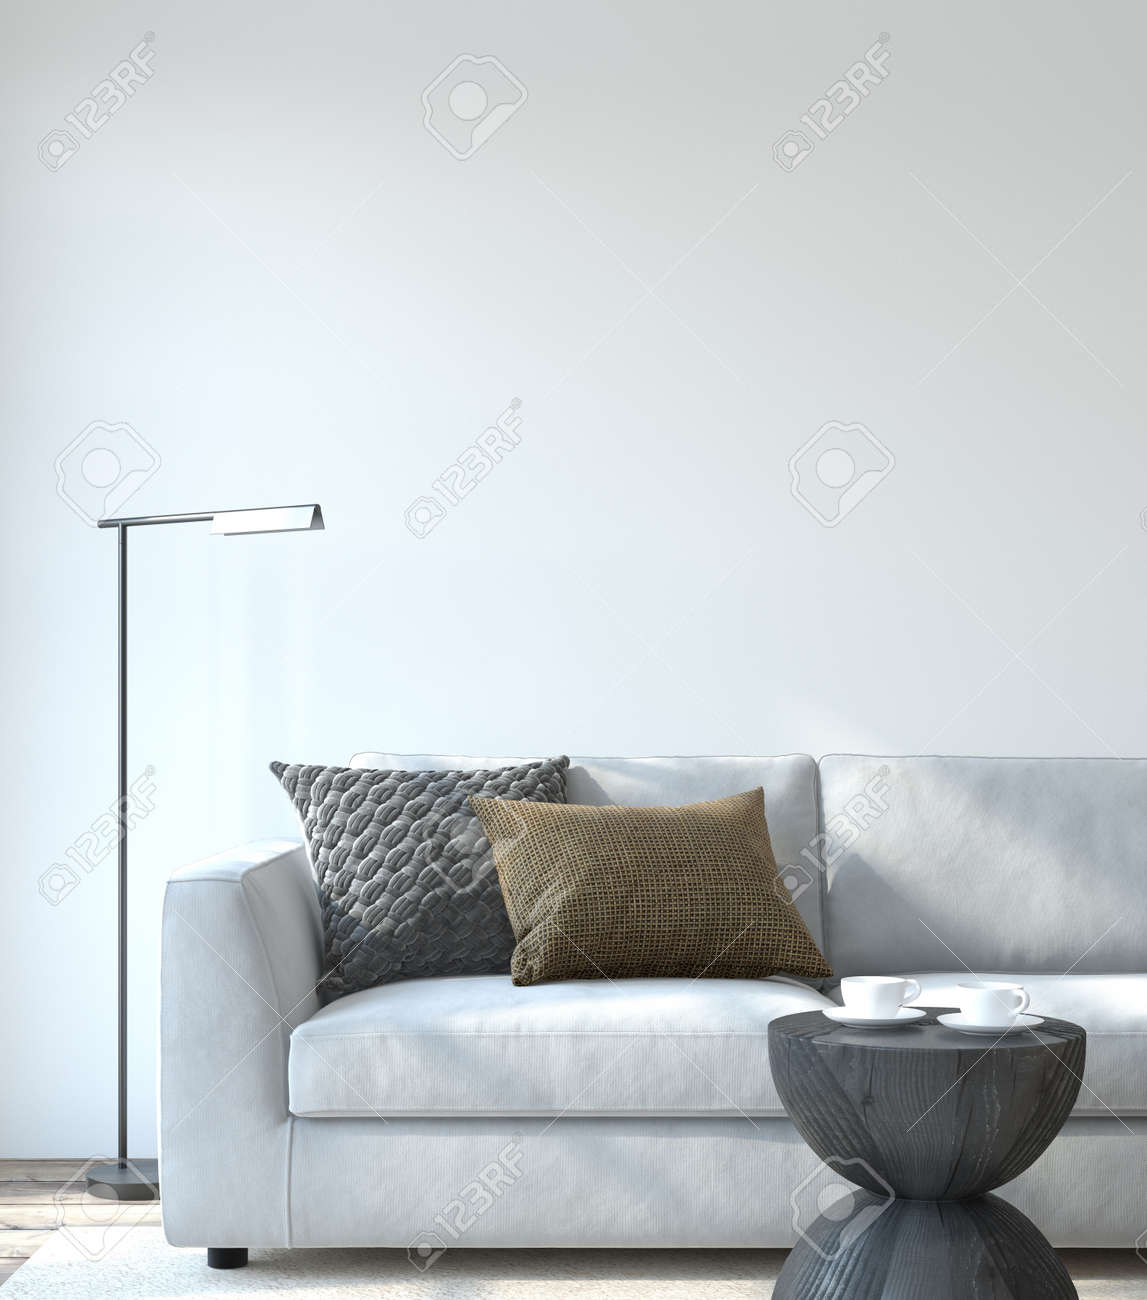 Modern living room interior. Interior mockup. The white couch near empty white wall. 3d render. - 164758635